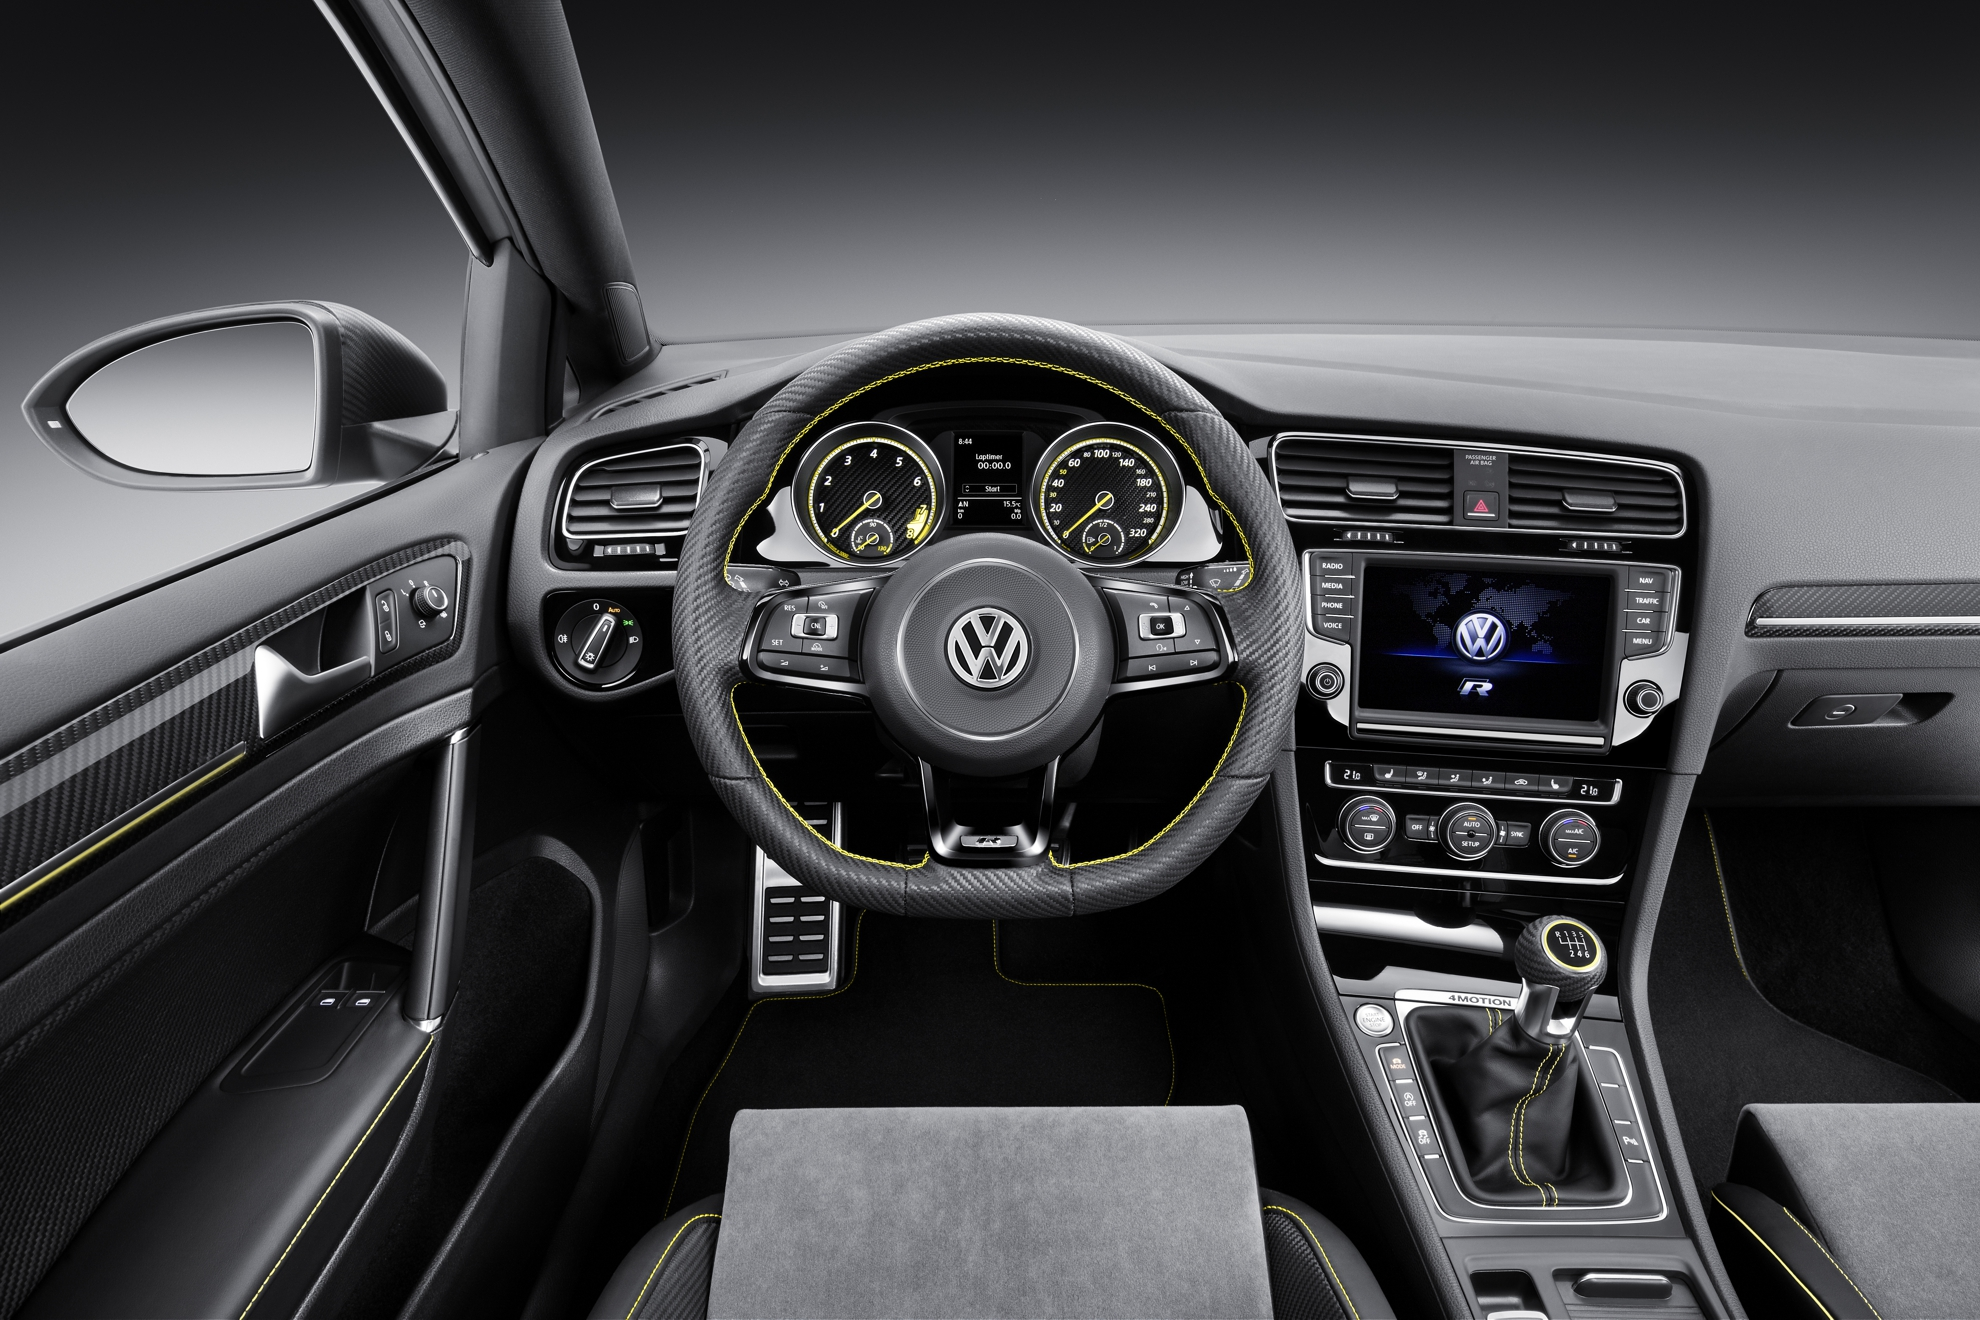 Volkswagen-Golf-Concept-Car-Interior